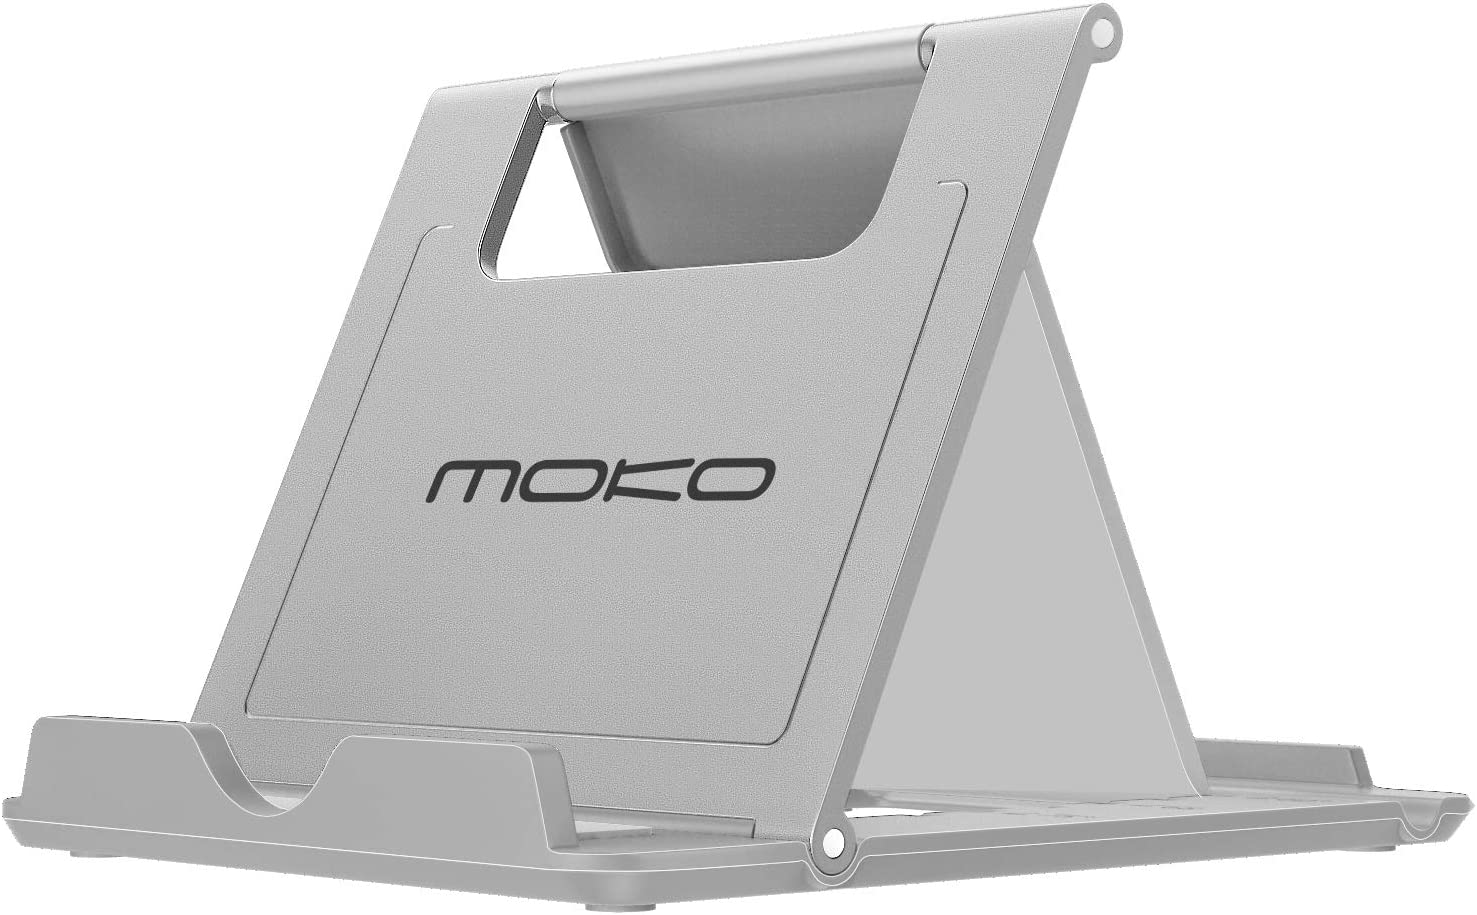 """MoKo Phone/Tablet Stand, Foldable Desktop Holder for Devices(6-11"""") Fit iPhone 11 Pro Max/11 Pro/11, iPad 10.2"""" 2019, iPhone Xs/Xs Max/Xr/X, iPad Air 3, Mini 5, Galaxy Note 10 Plus, Gray(Small Size)"""